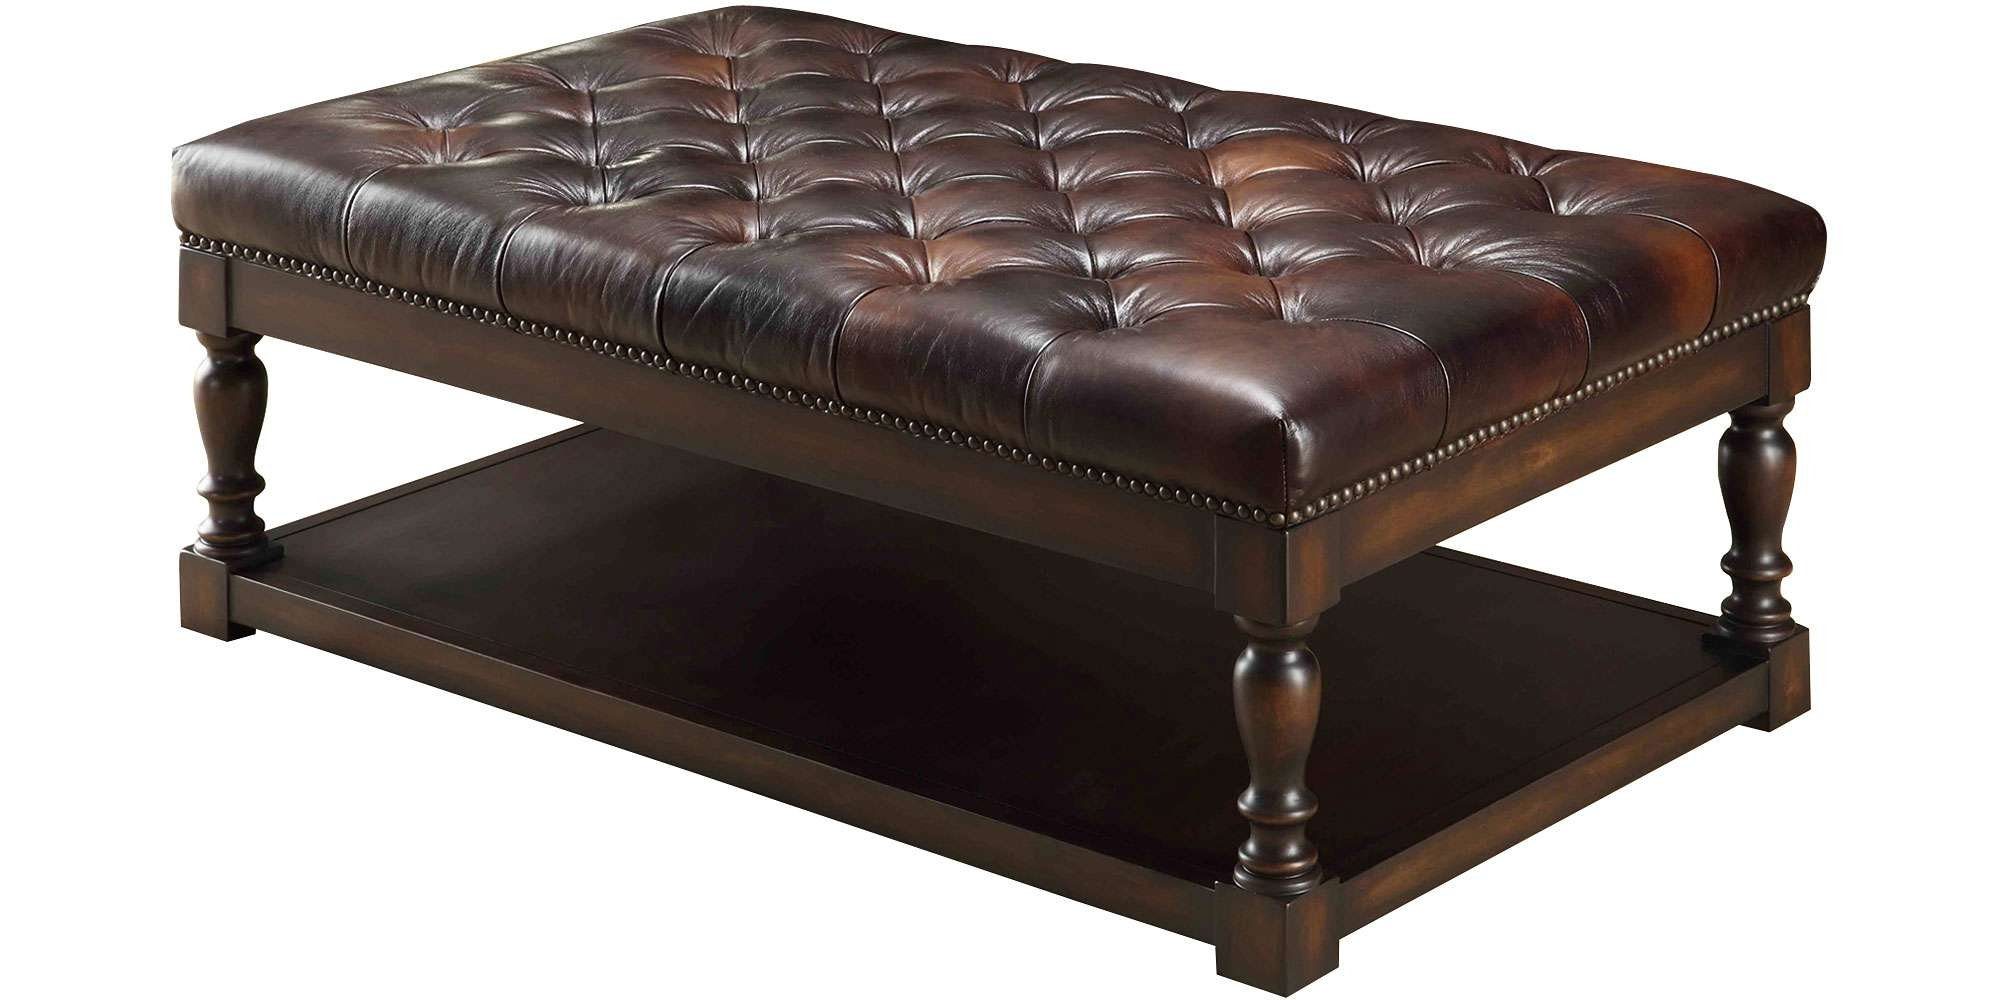 Coffee Tables : Circle Ottomans With Storage Ottoman Semi Within Latest Brown Leather Ottoman Coffee Tables With Storages (View 9 of 20)